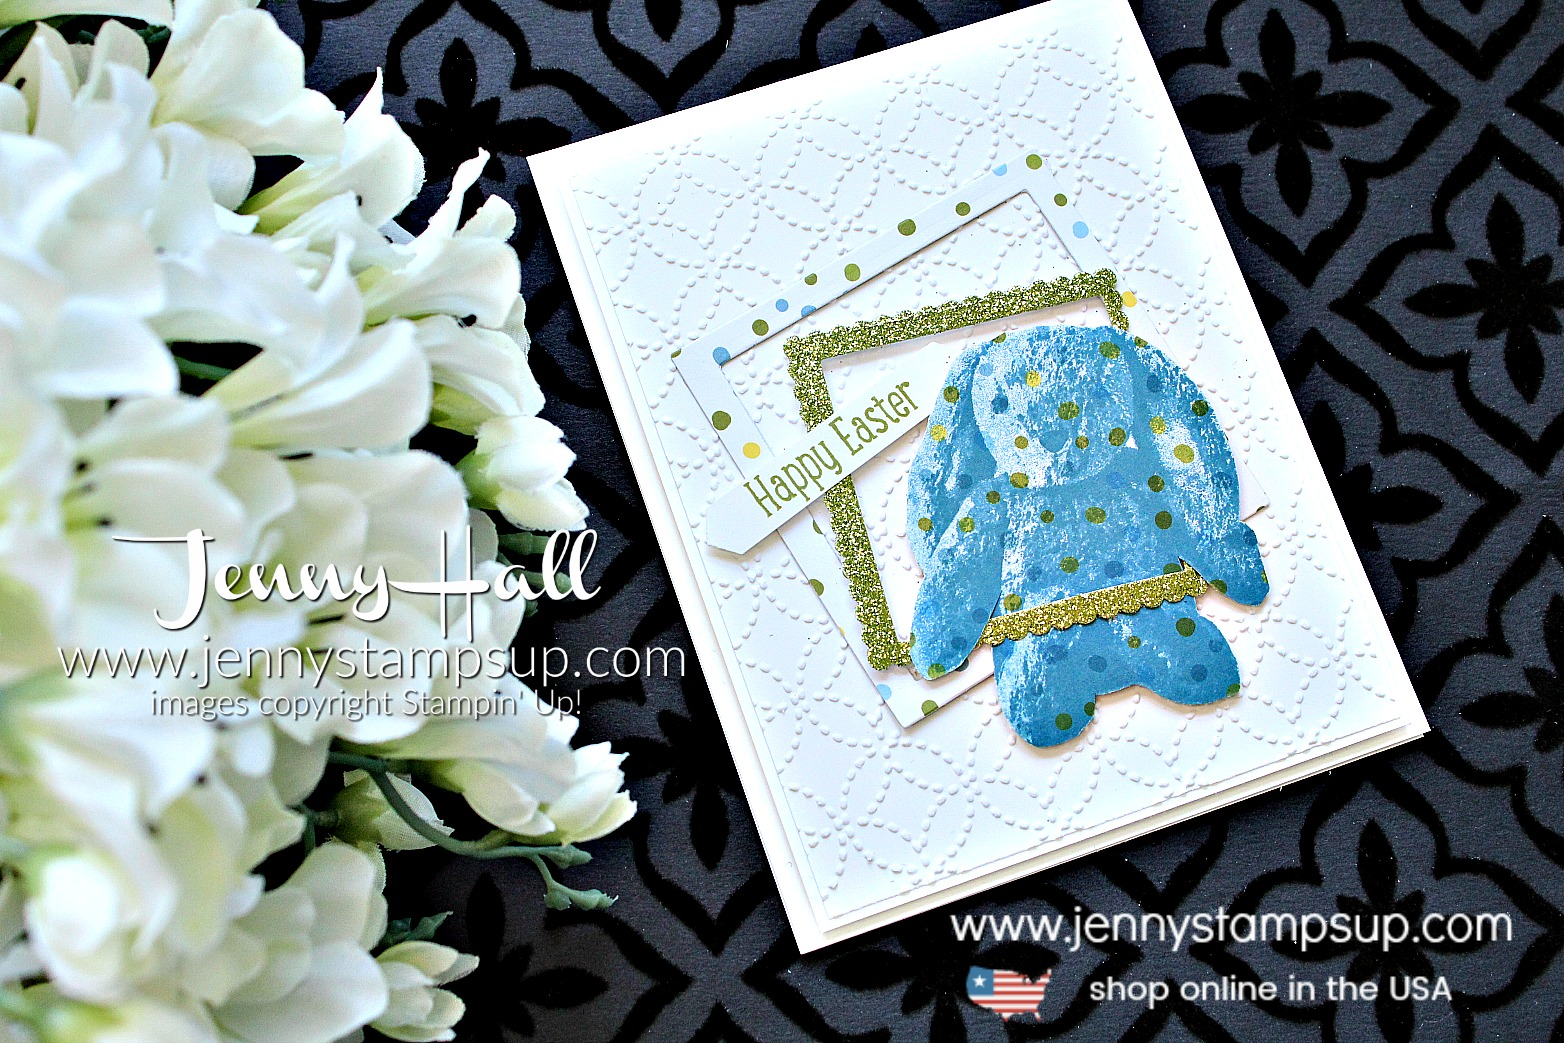 Sweet Little Something blue bunny card created by Jenny Hall at www.jennyhalldesign.com for #cardmaking #layeringsquares #layeringstamp #sweetlittlesomething #jennyhall #jennyhalldesign #jennystampsup #stampinup #stamping #eastercard